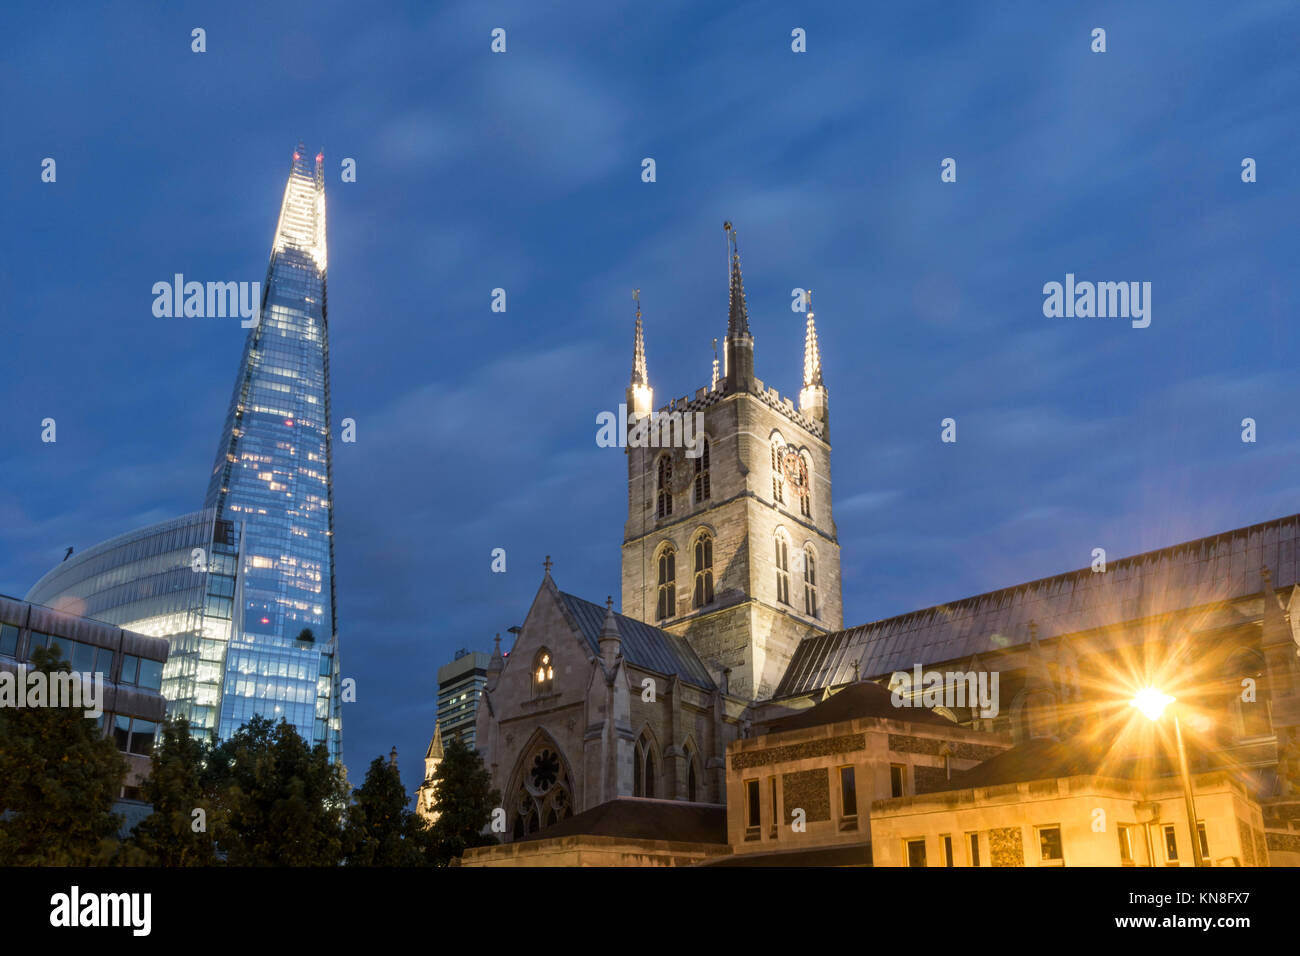 Southwark Cathedral, The Shard, Skyscraper, London, United Kingdom, - Stock Image